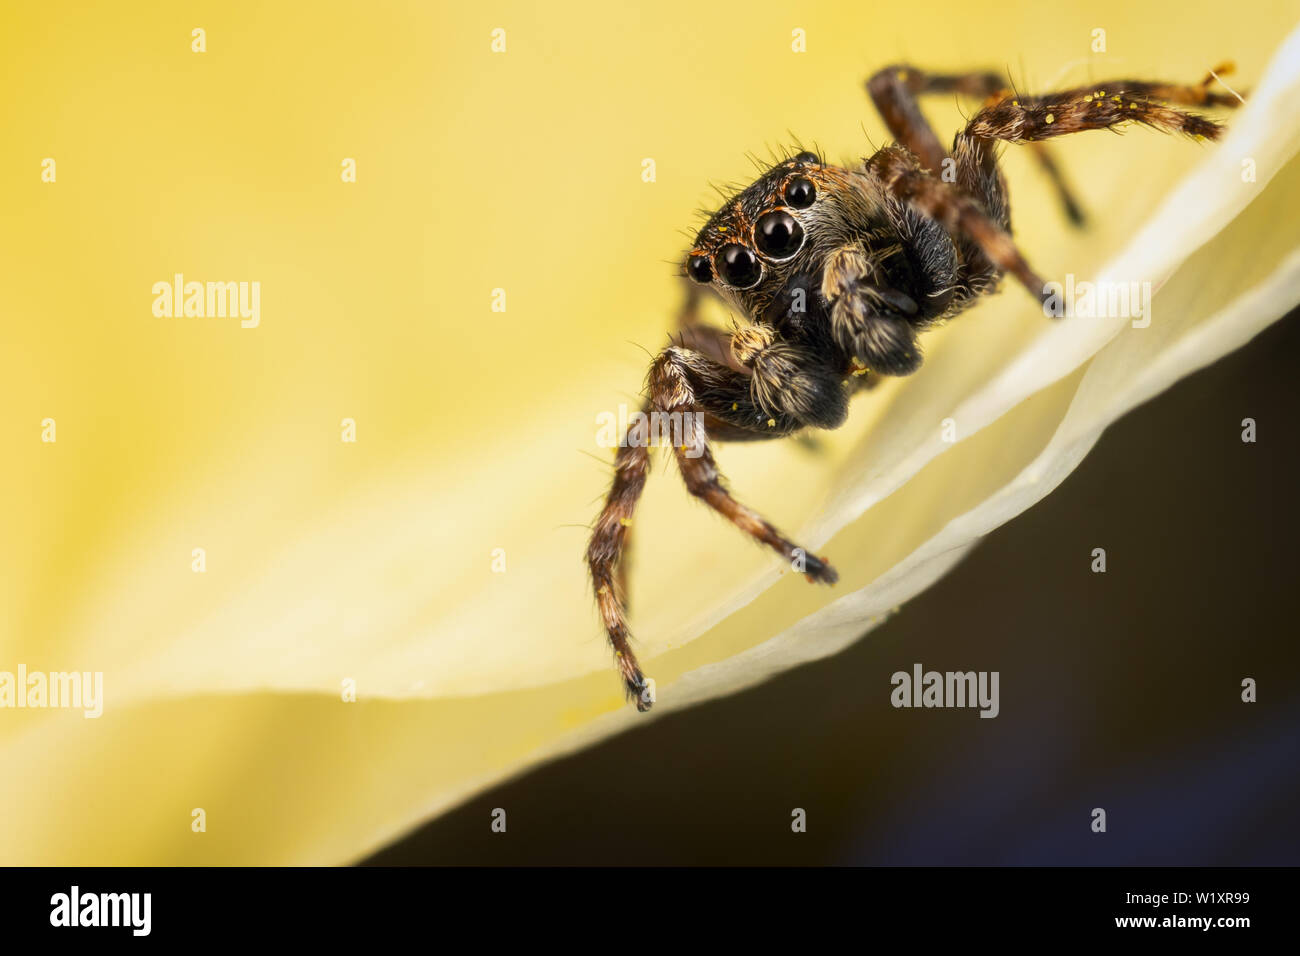 A brown jumping spider on the yellow petal in the yellow background - Stock Image